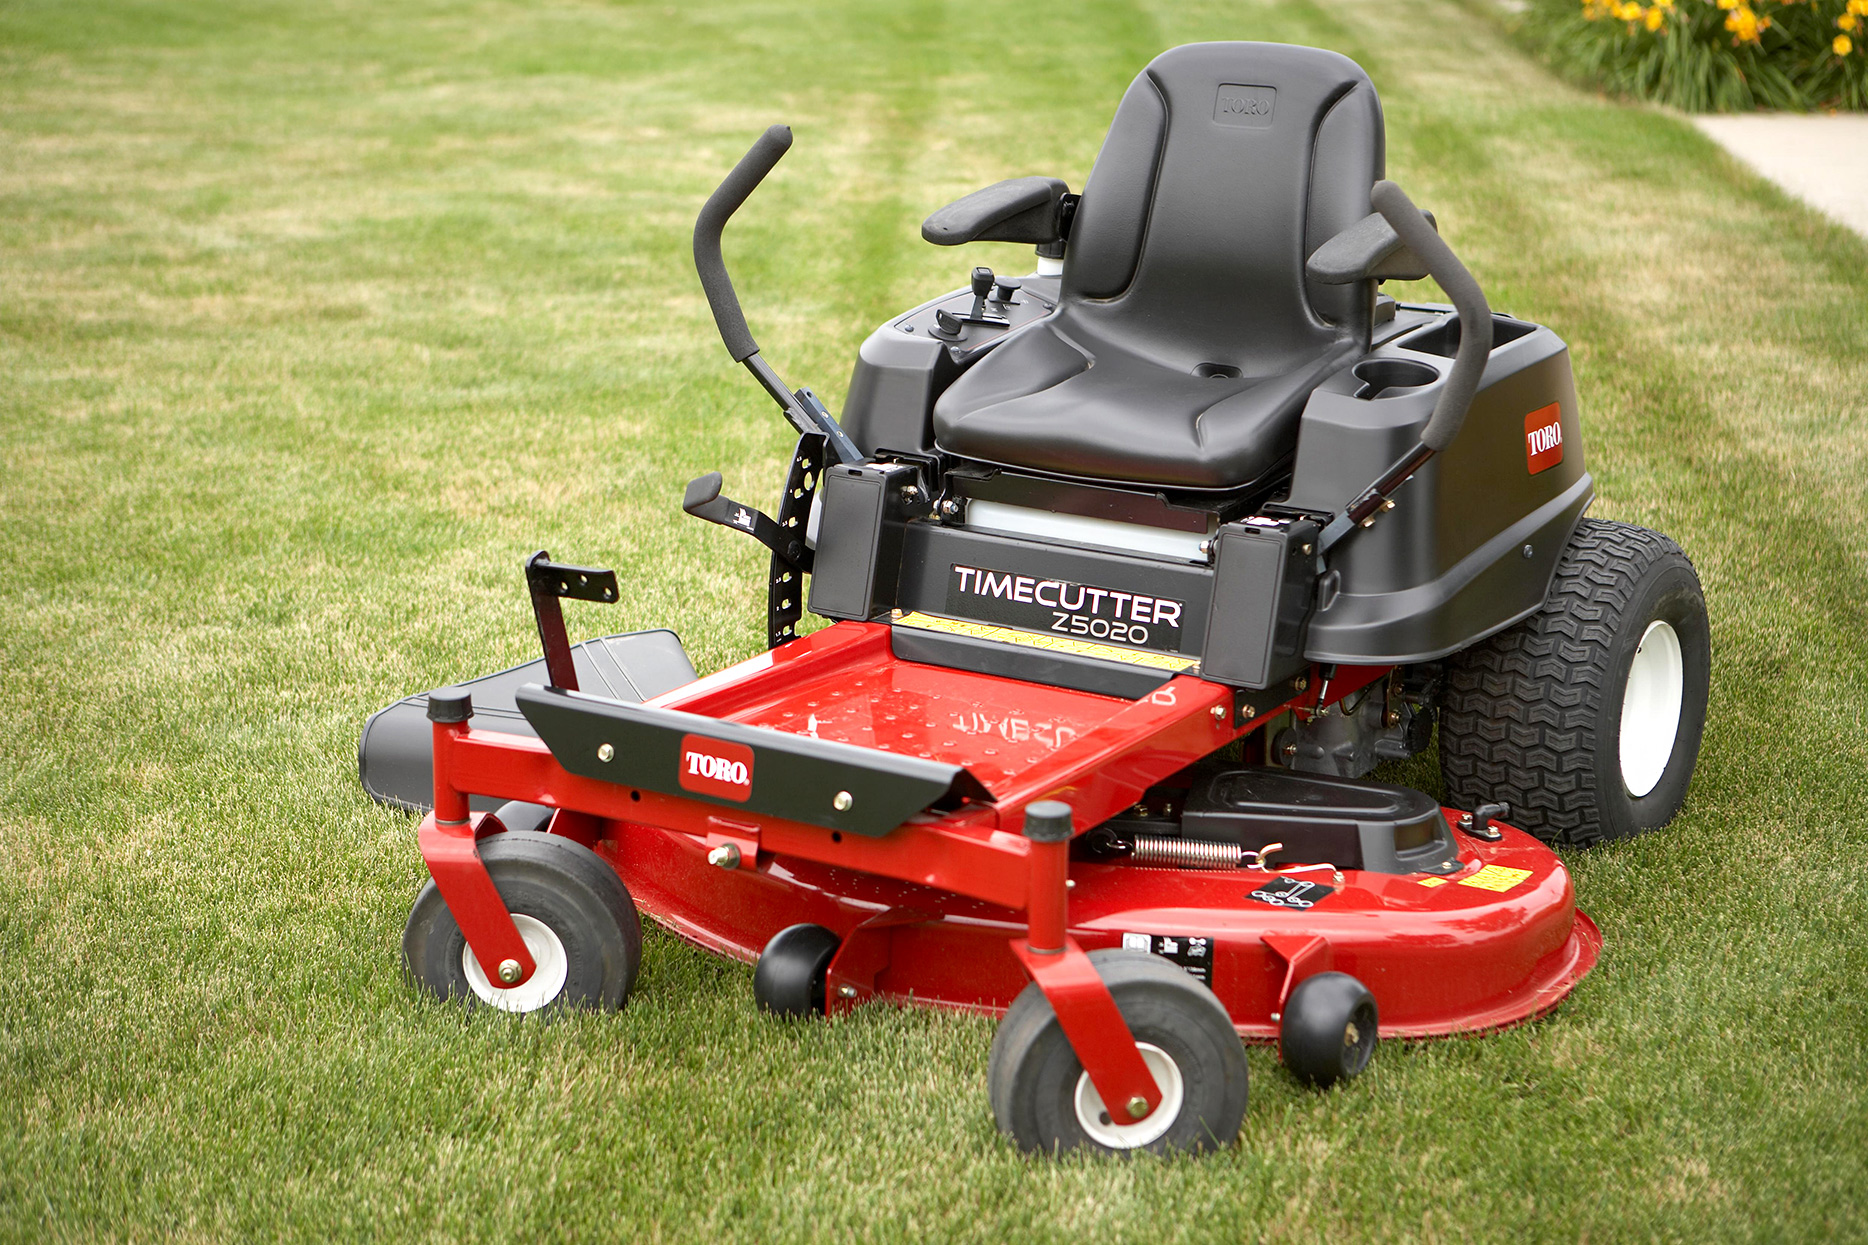 red toro time cutter riding mower